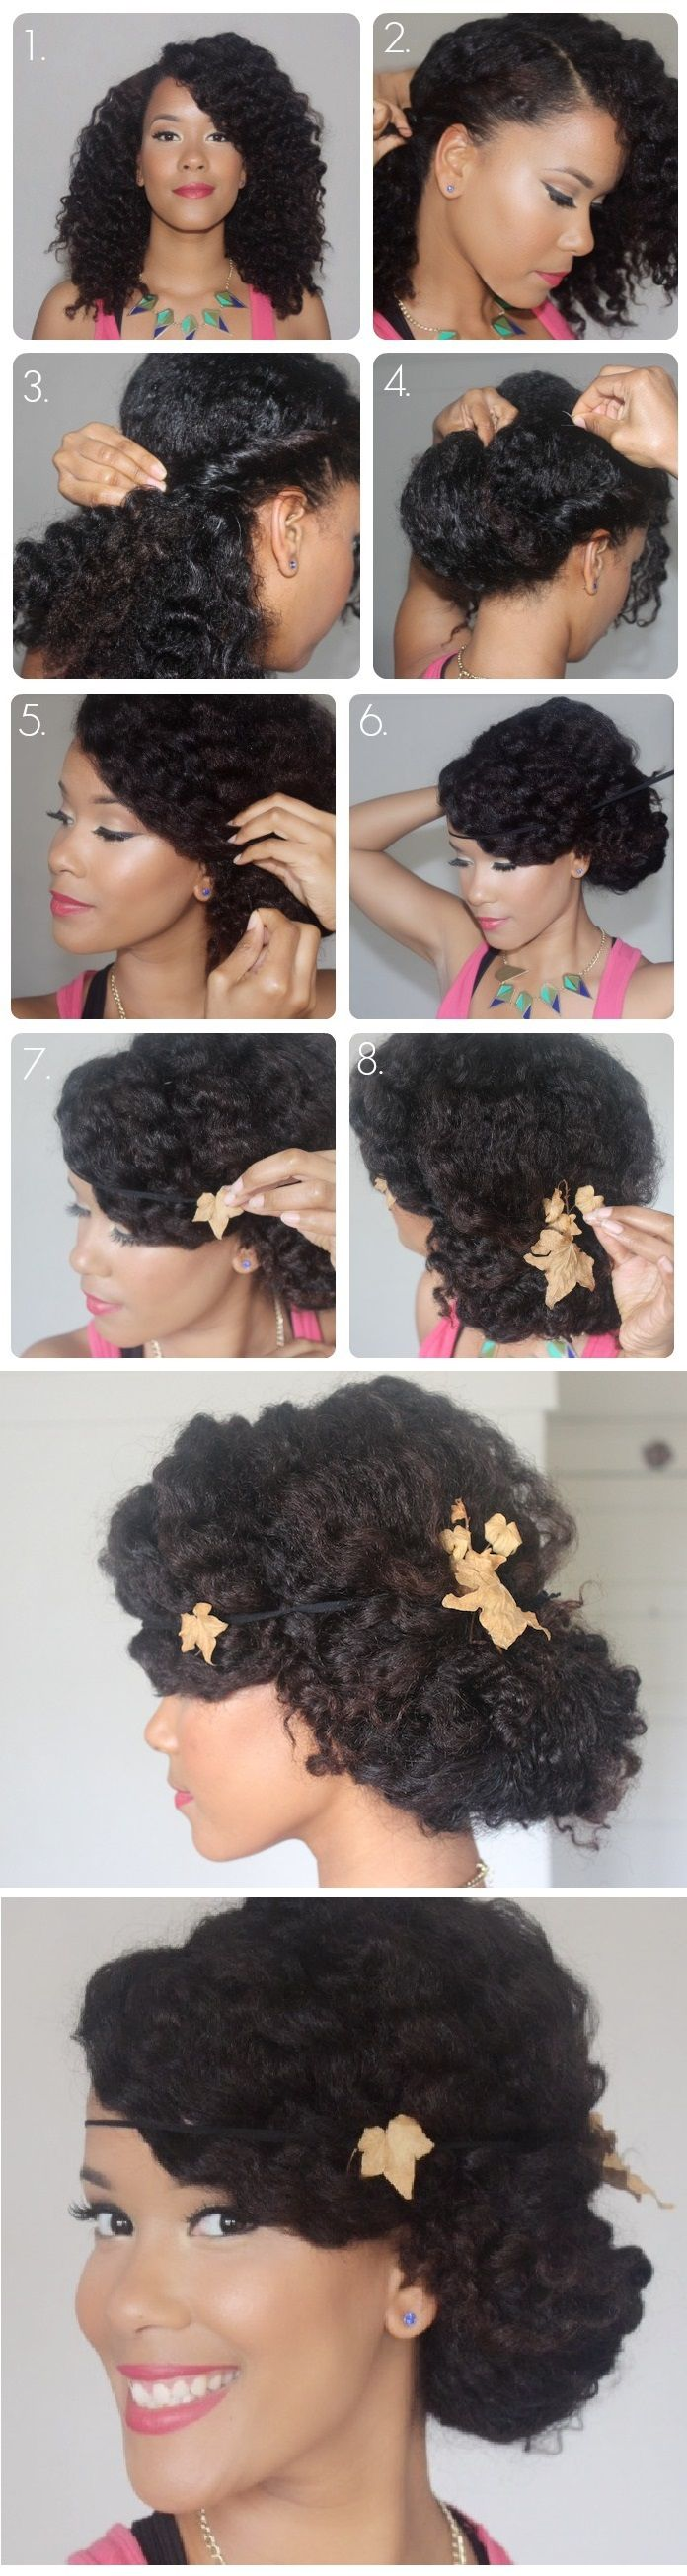 best natural hair images on pinterest natural hair coily hair